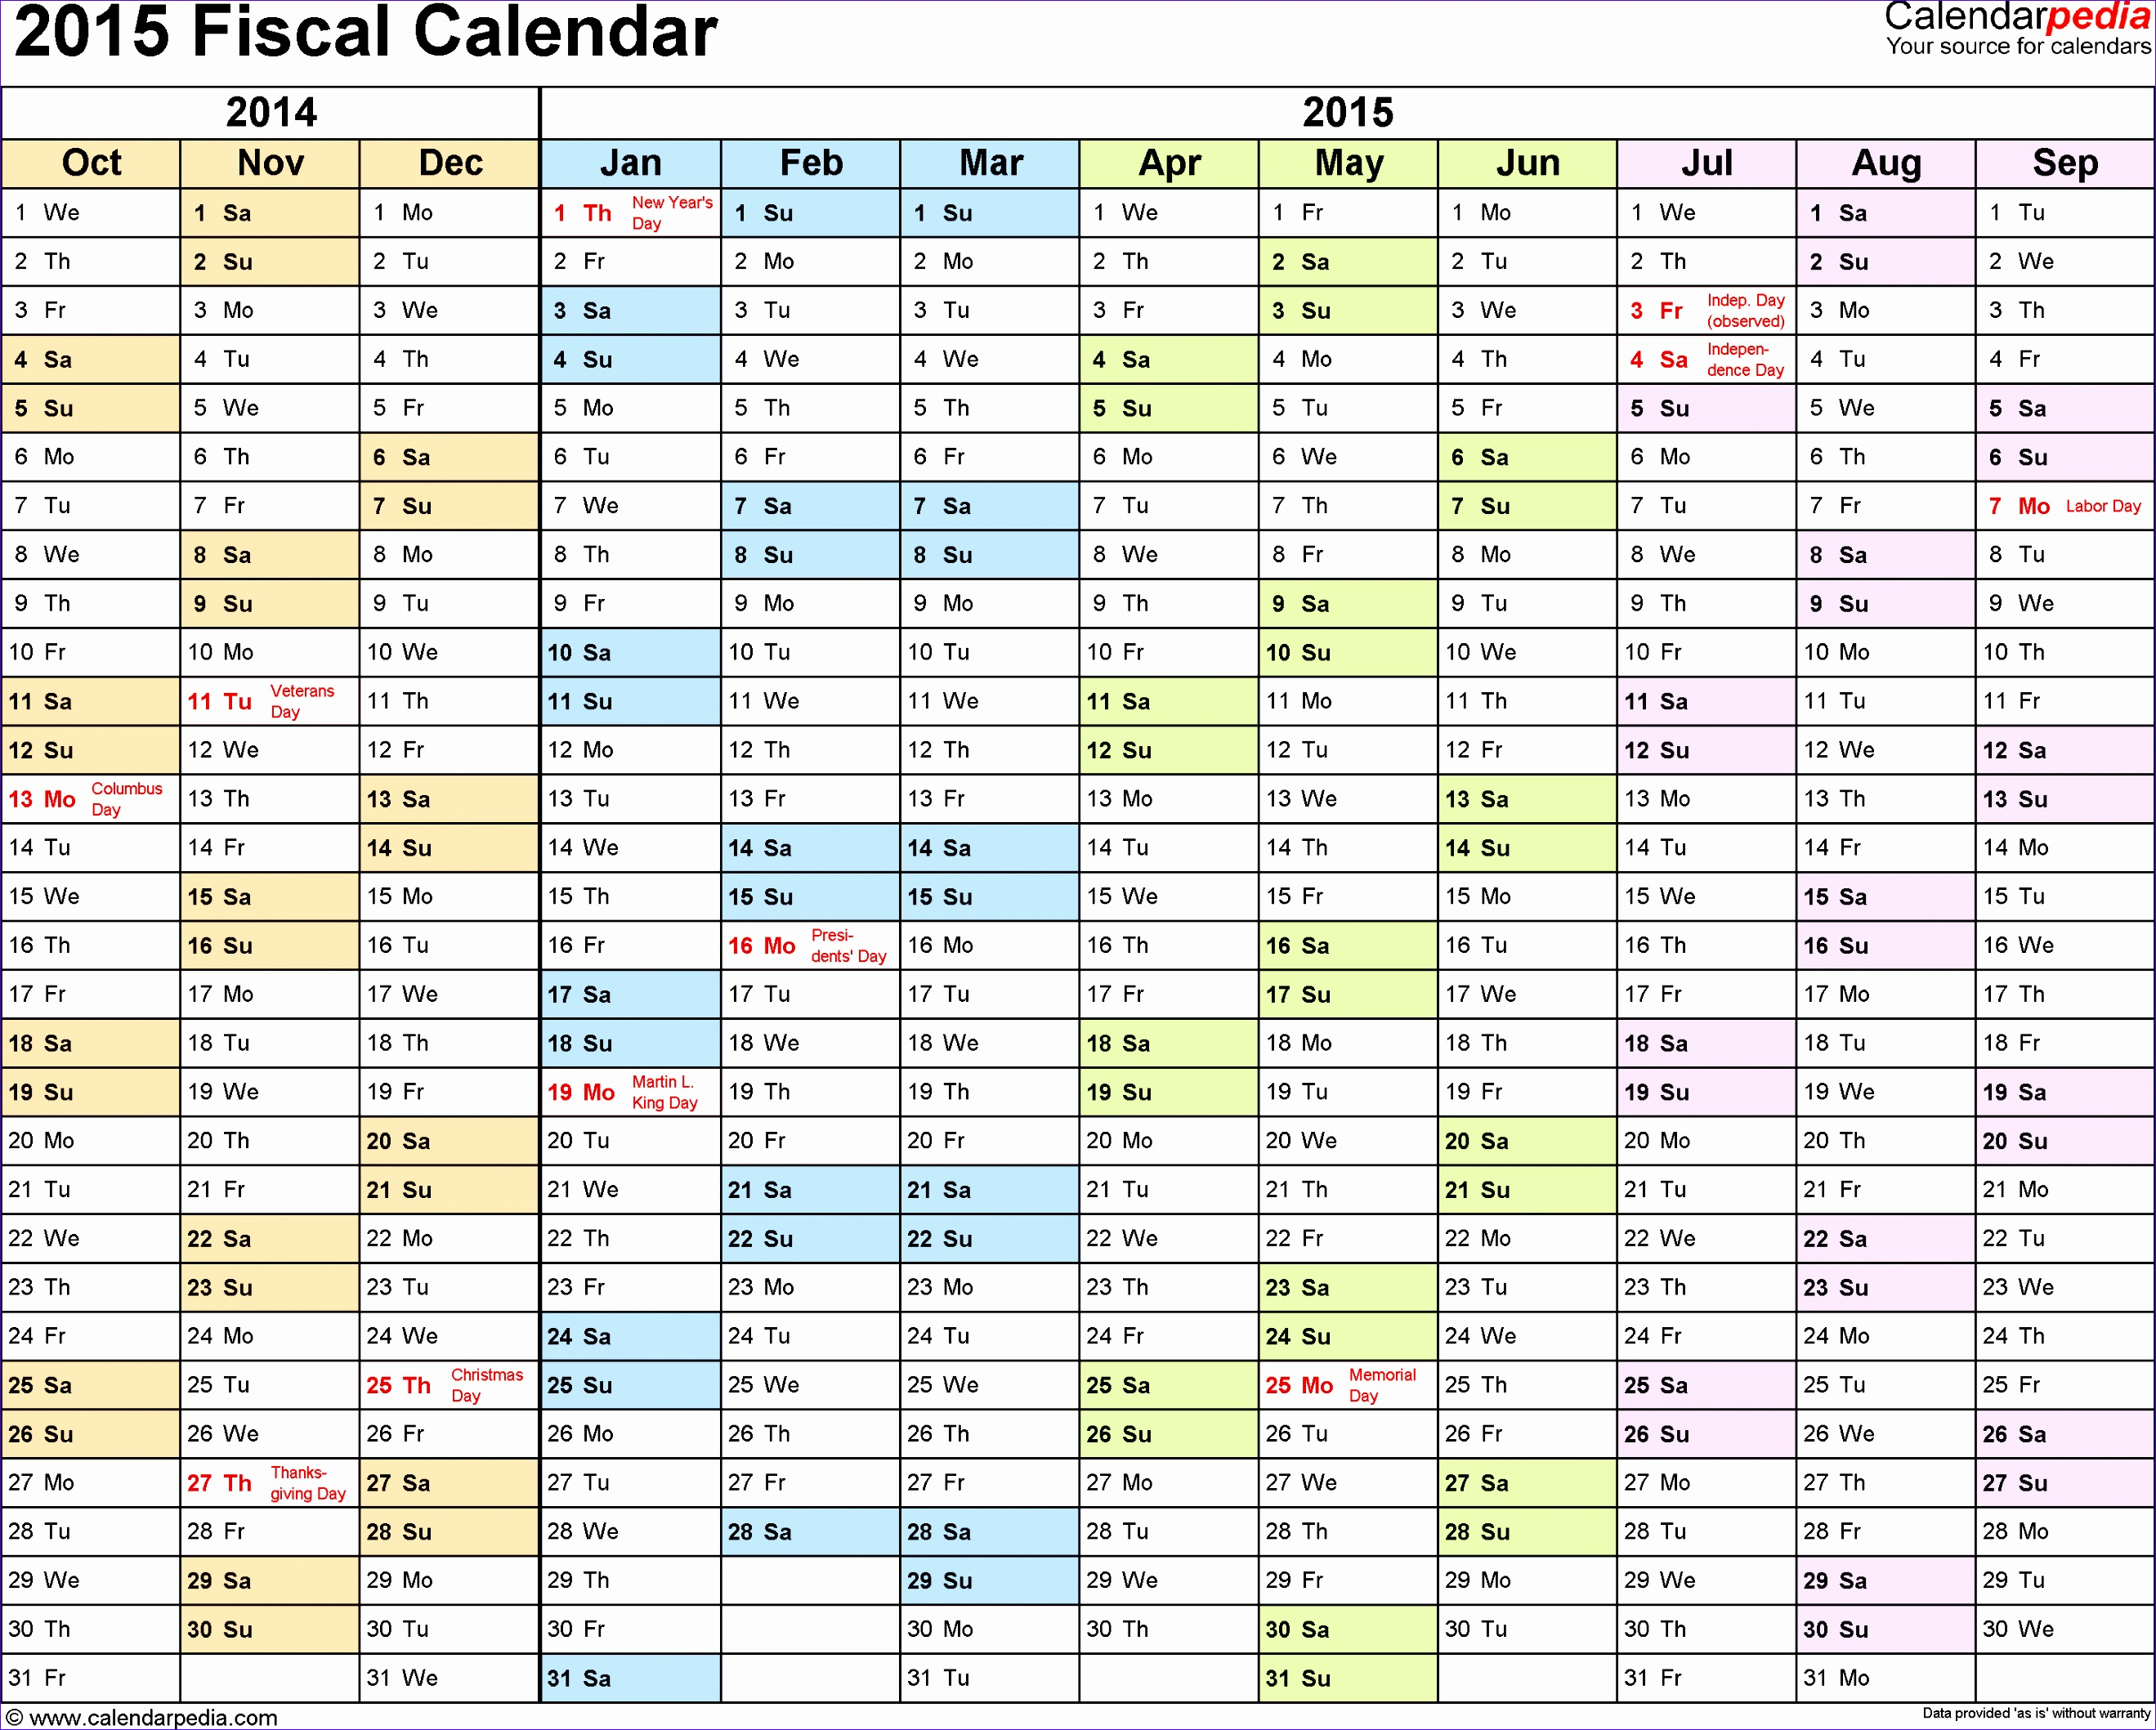 Personal Financial Statement Template Excel Hgfgh Inspirational Fiscal Calendars 2015 as Free Printable Excel Templates